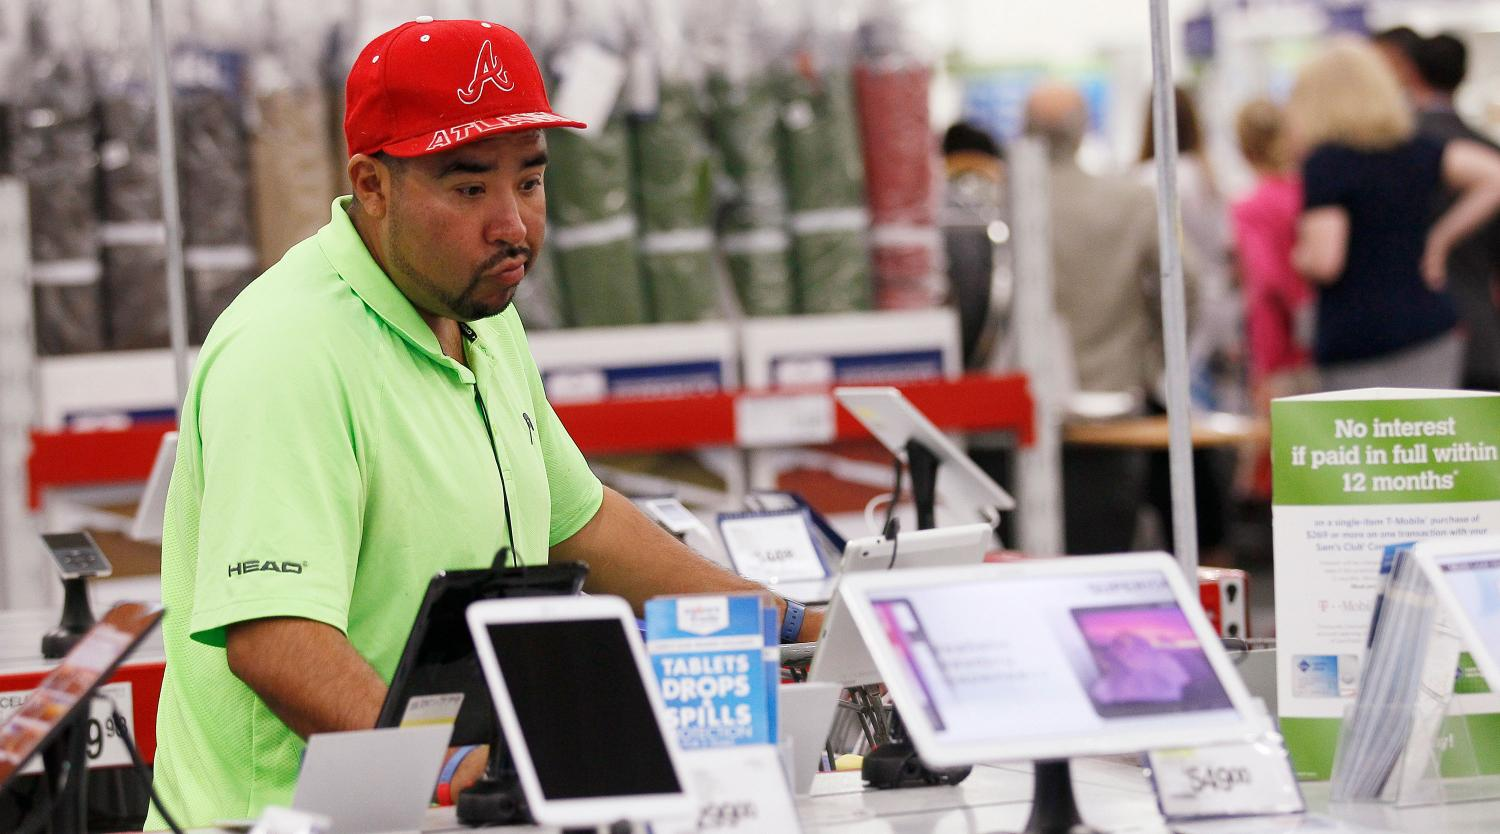 A customer looks over the selection of tablet computers at a Sam's Club in Bentonville, Arkansas